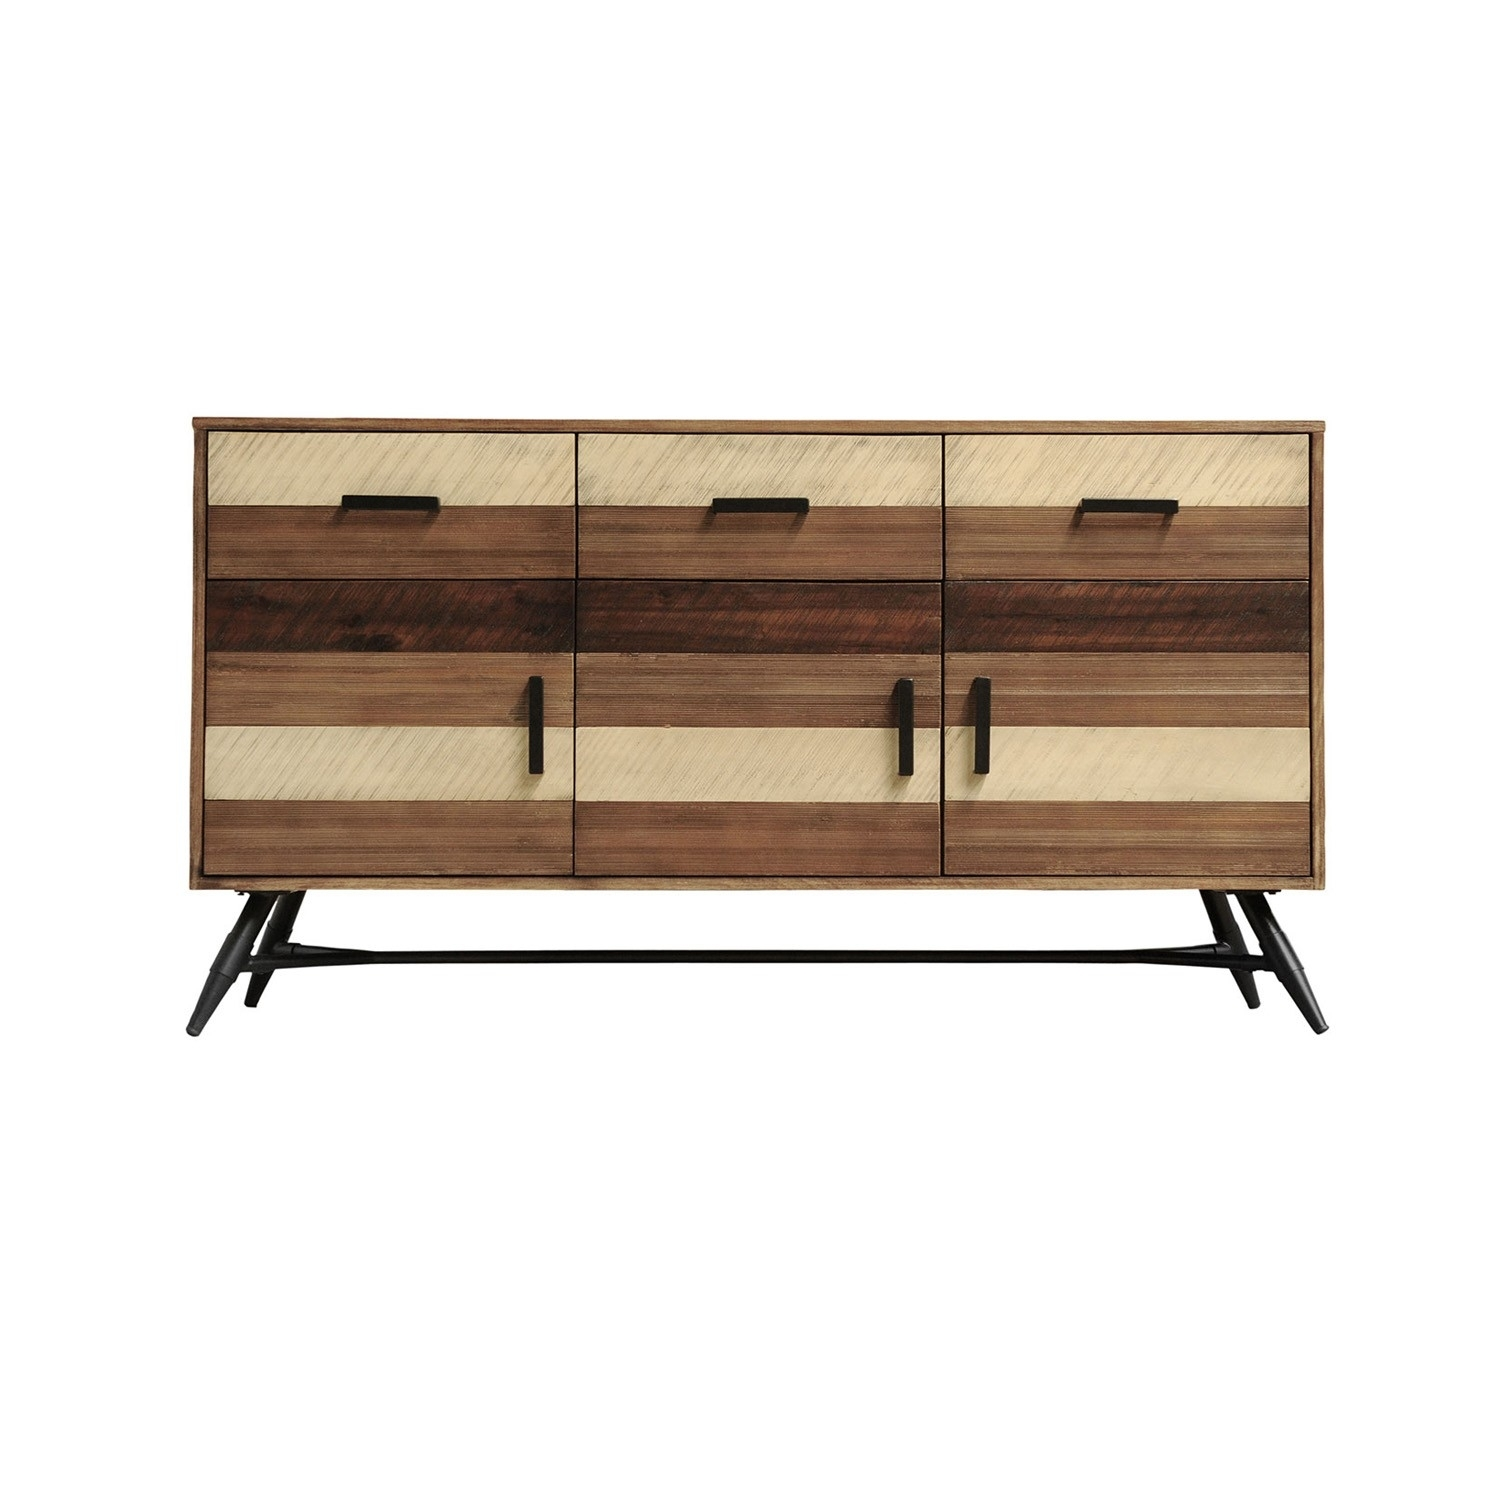 Medley-Buffet-Acacia Wood-Metal Base-63*18*34.4 - Bu1294 Ea 00 pertaining to Acacia Wood 4-Door Sideboards (Image 13 of 30)